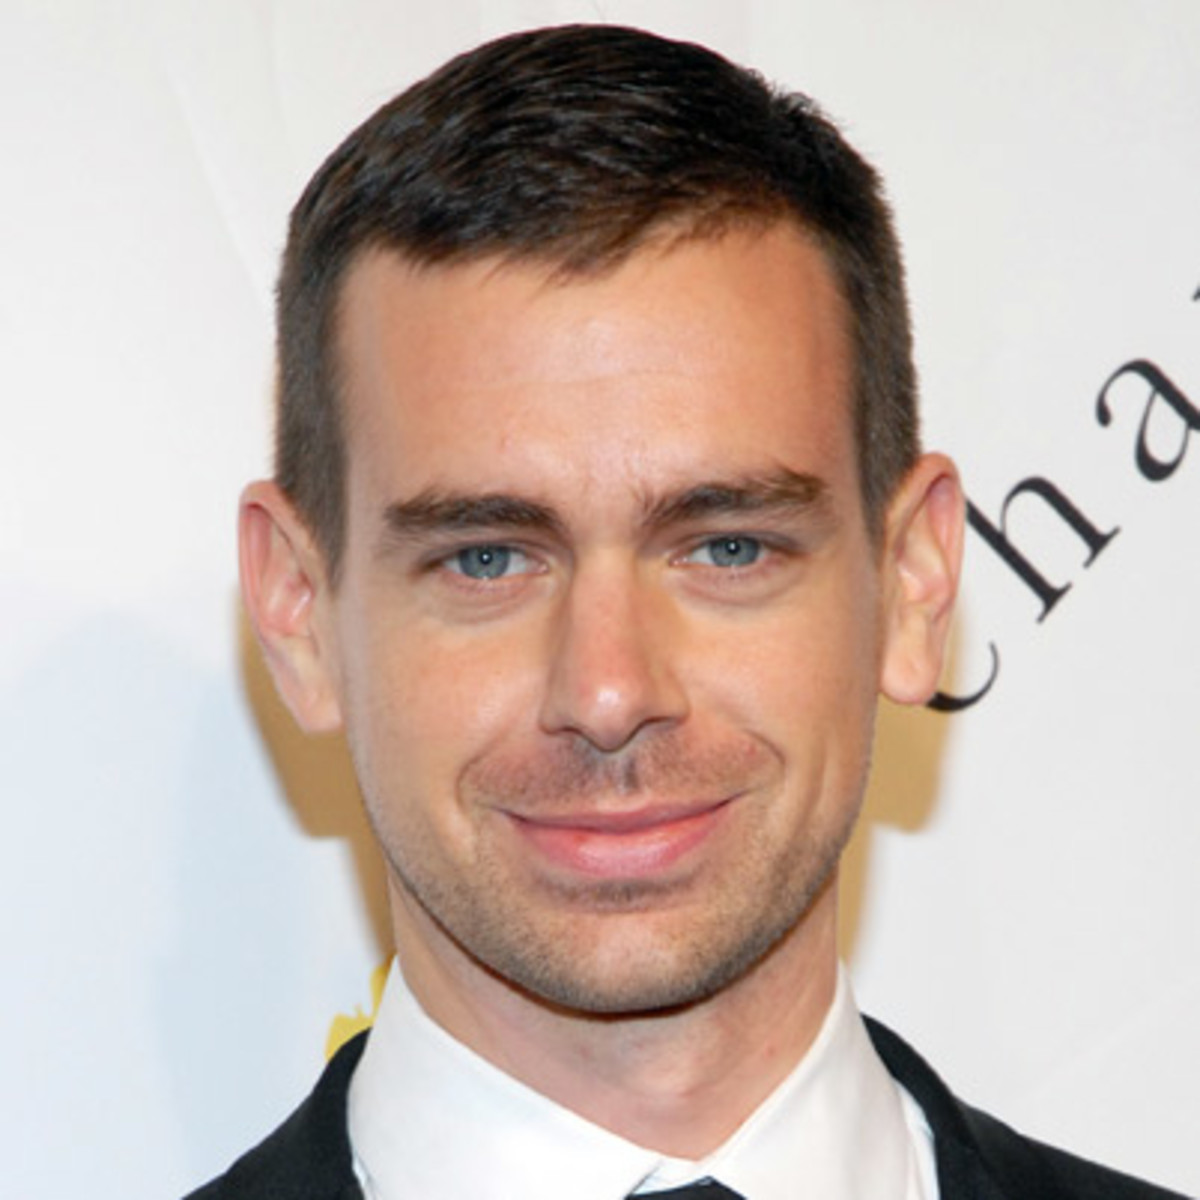 Jack Dorsey Twitter Age Facts Biography